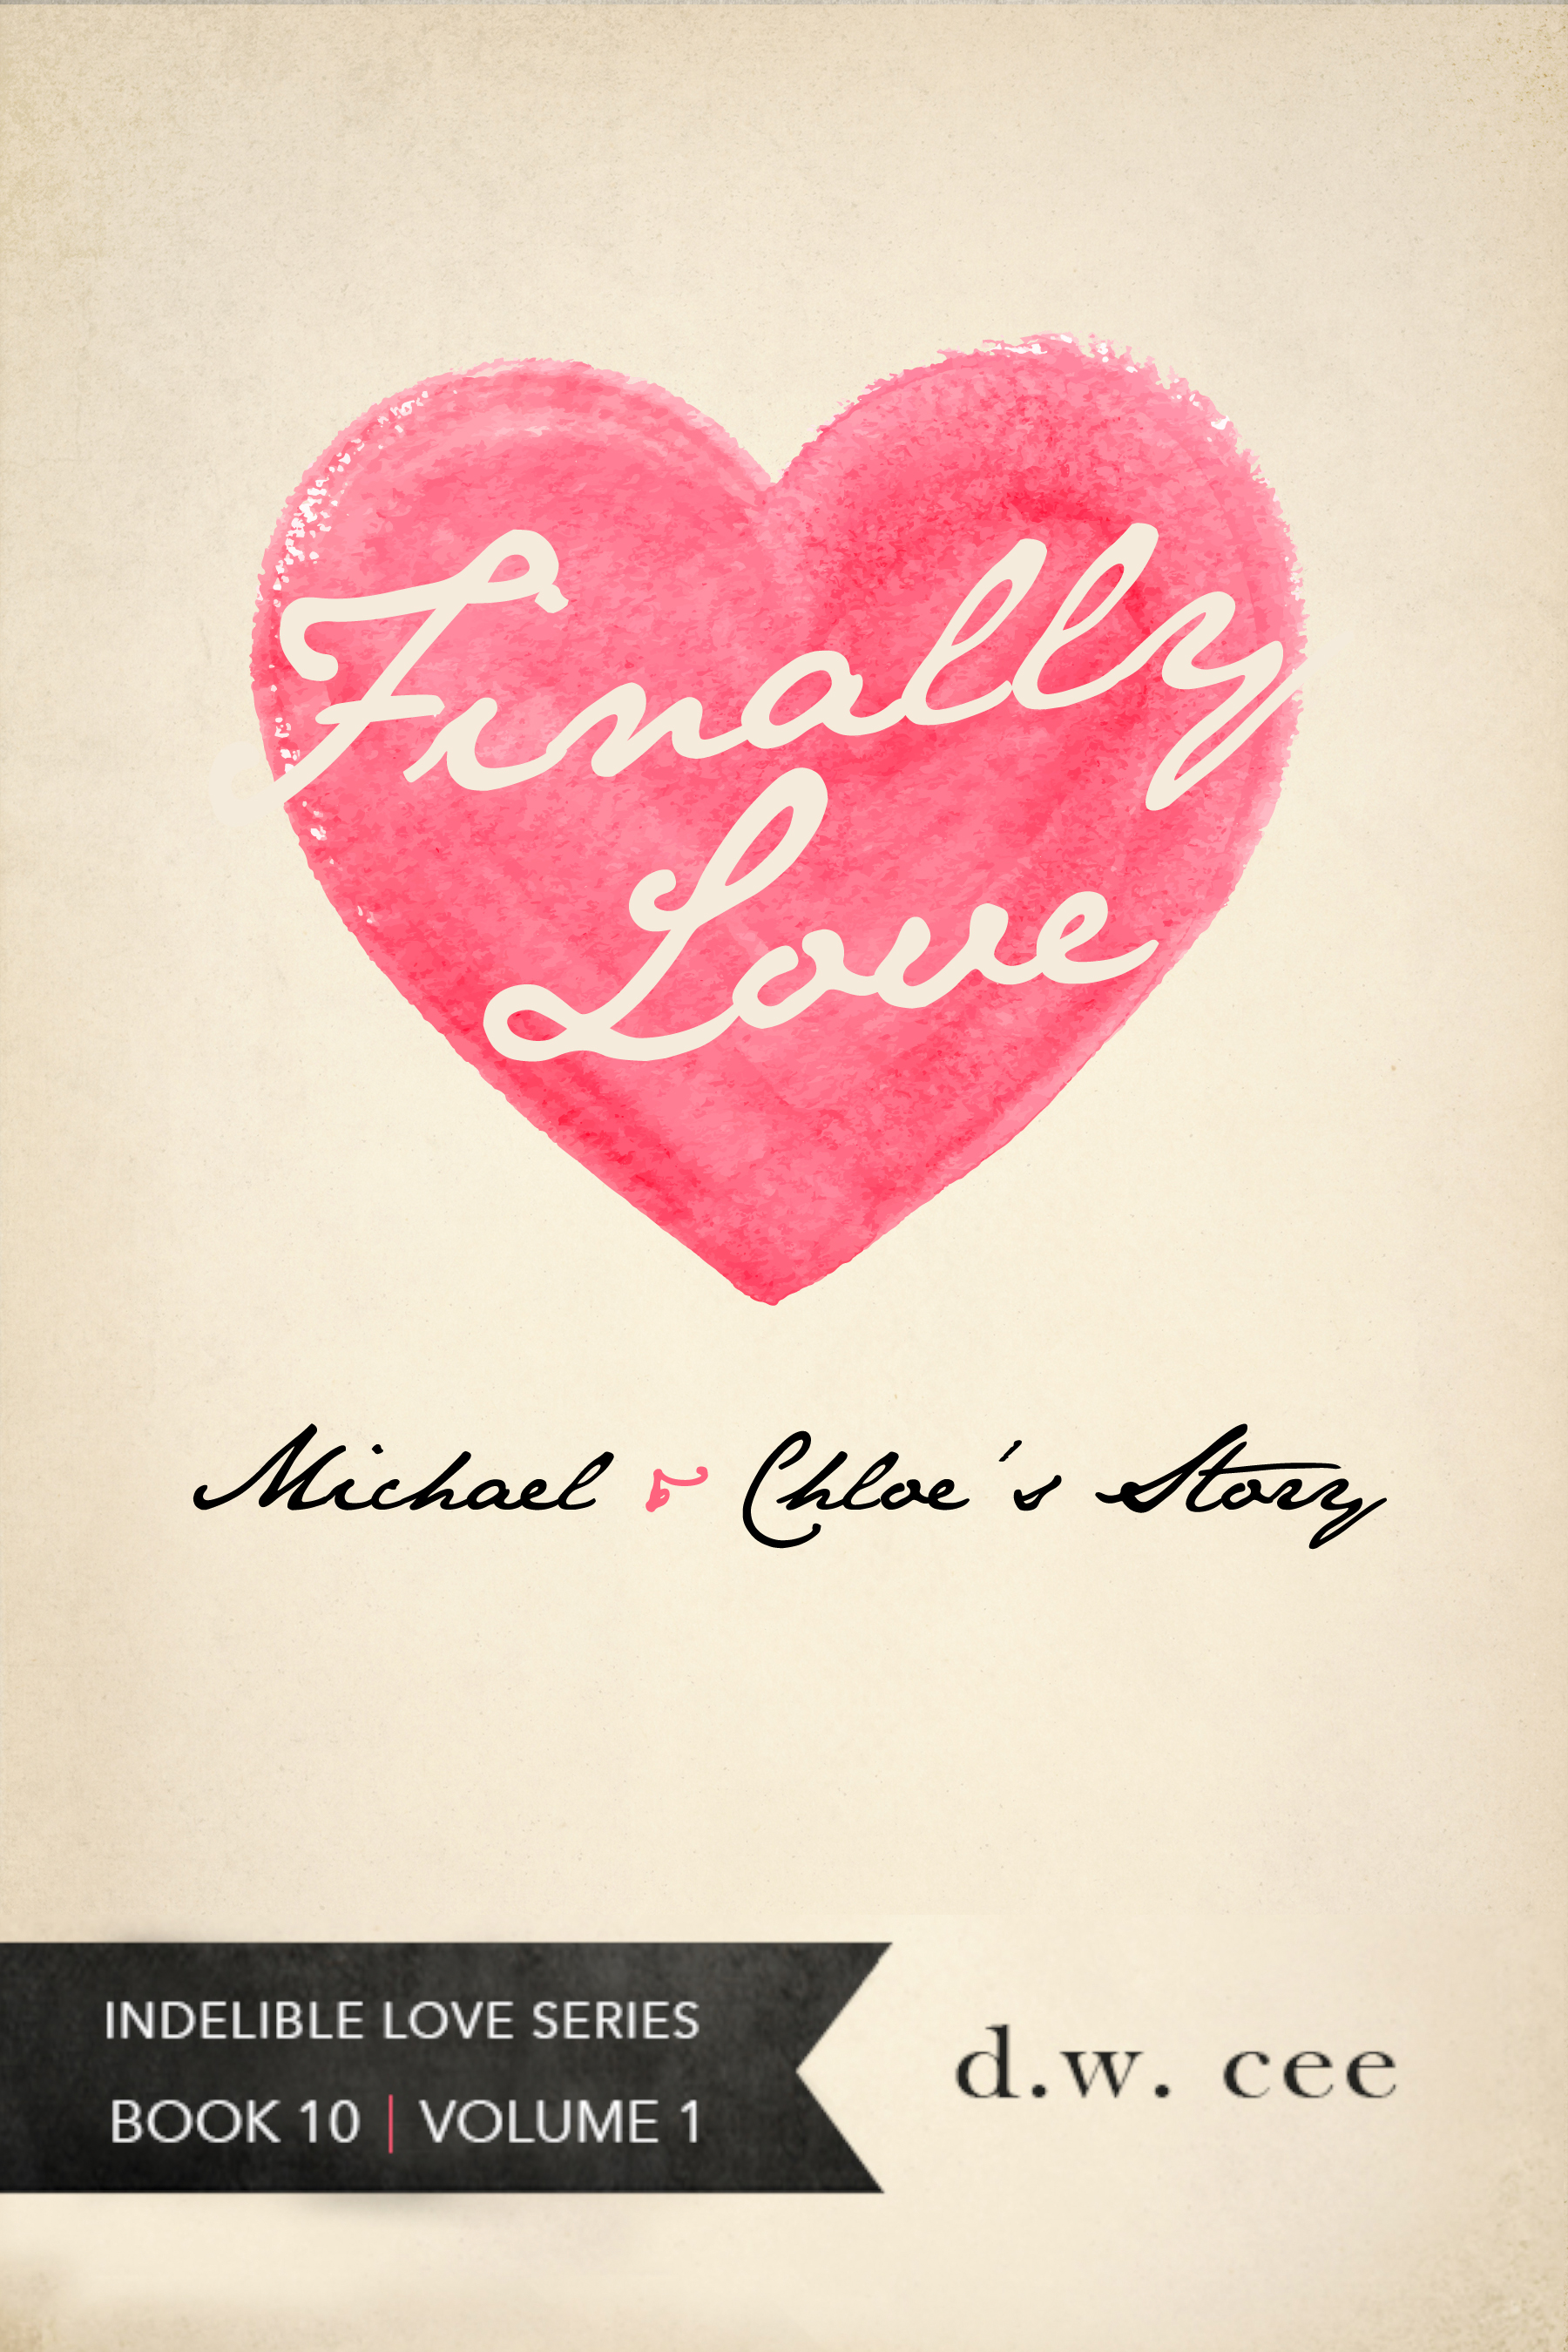 Finally, Love! - Michael & Chloe's Story Vol. 1  (Indelible Love Series Book 10)